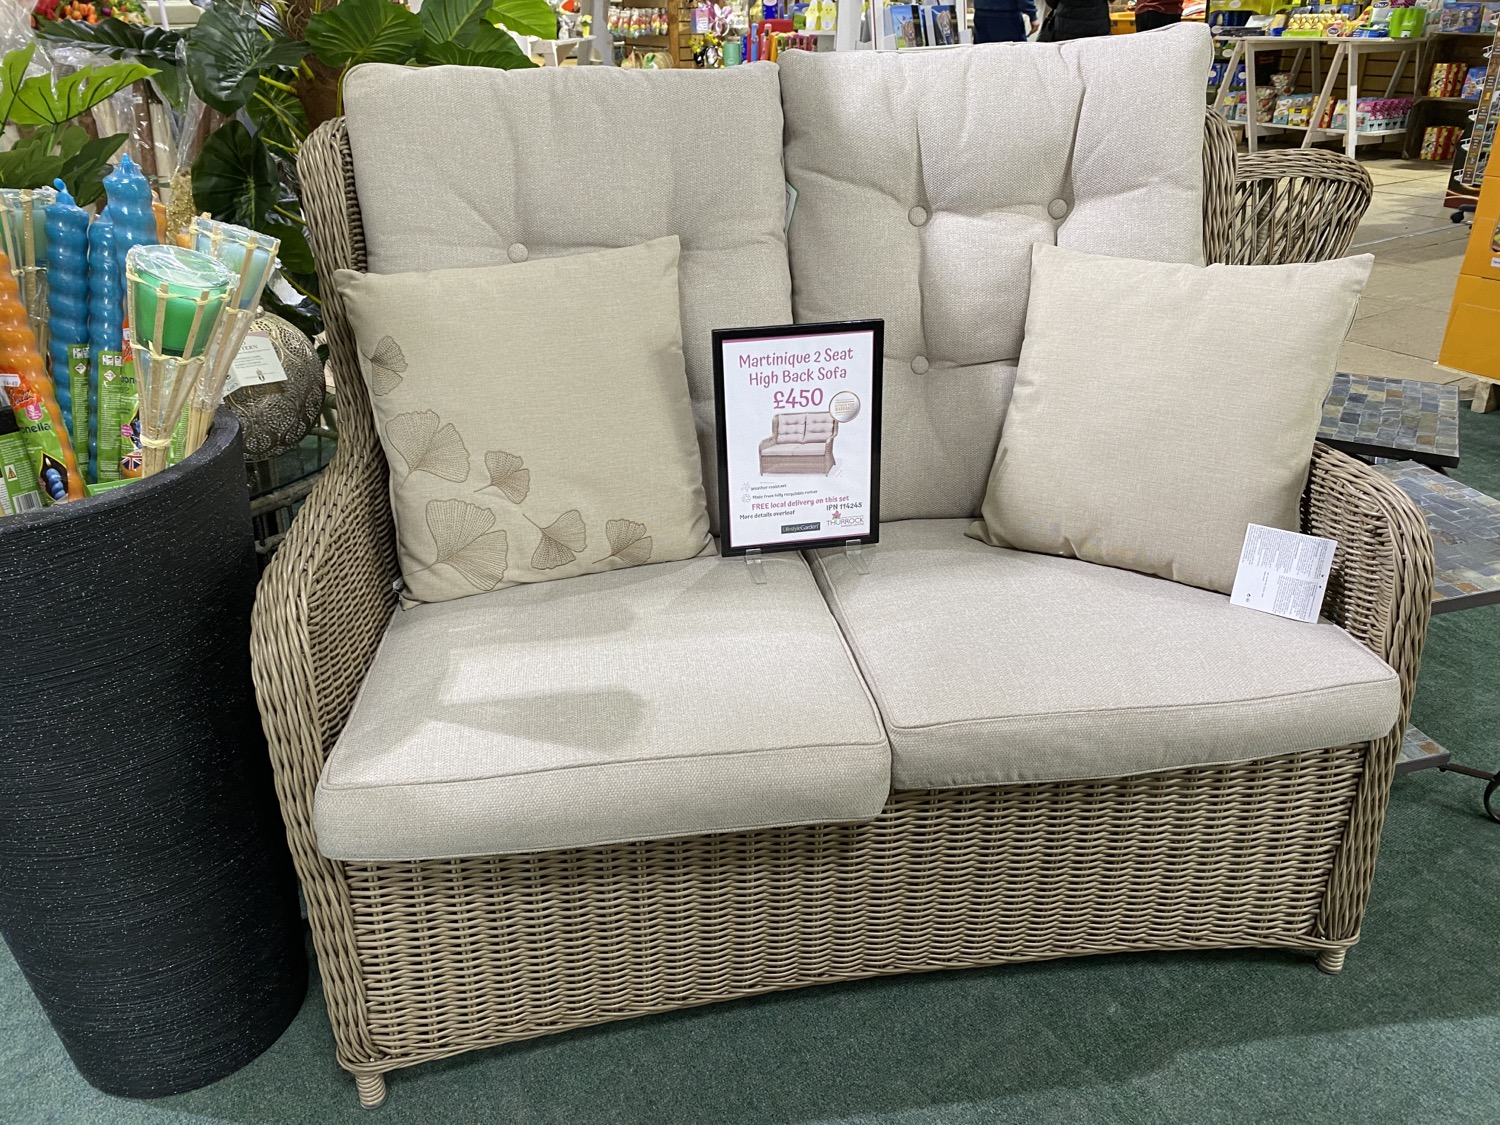 Martinique 2 Seat High Back Sofa - £450